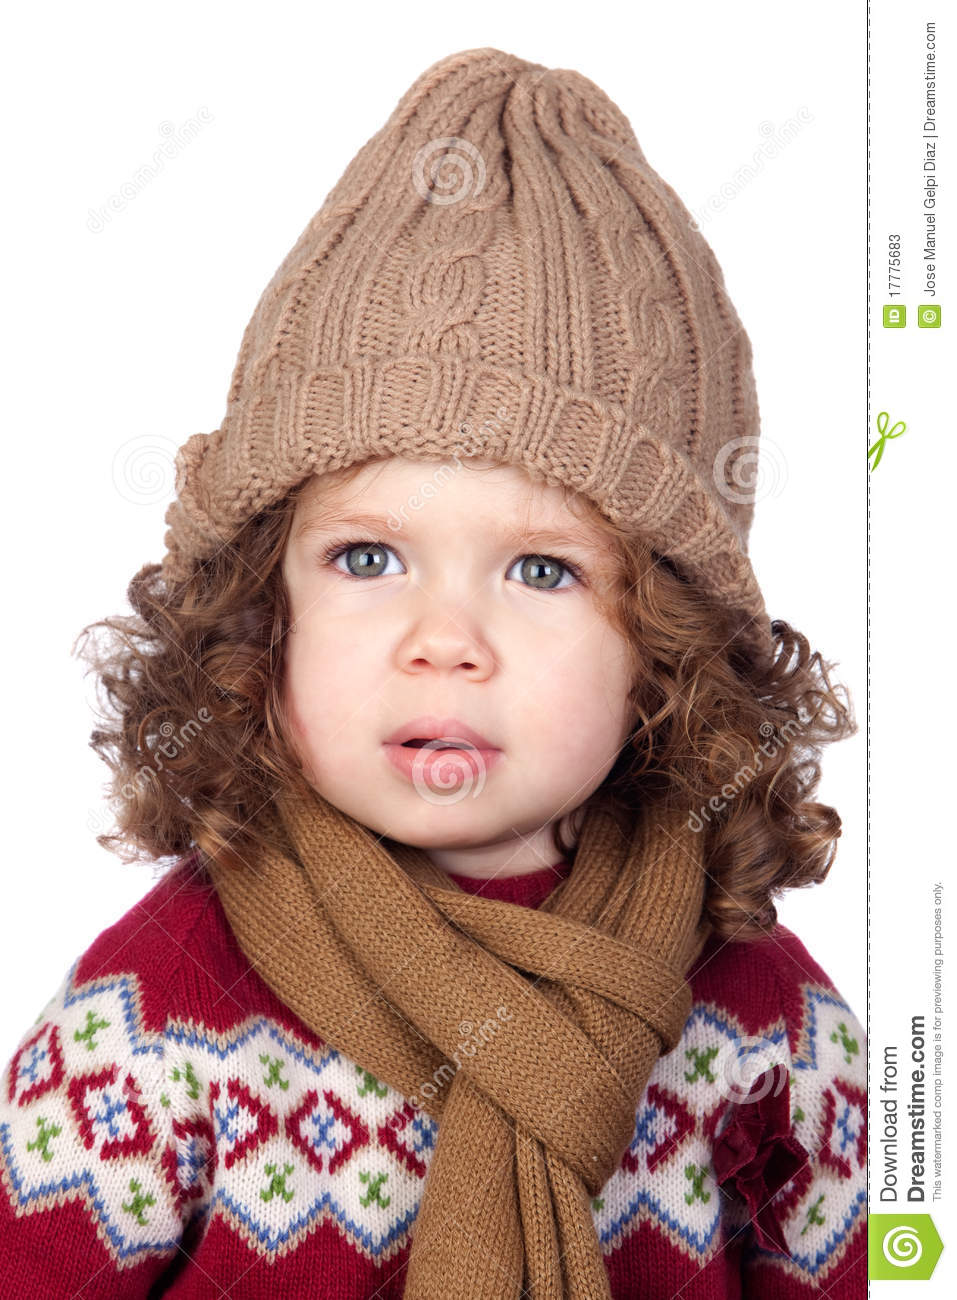 605868d5e01a Beautiful Baby Girl With Wool Cap Stock Image - Image of hair ...